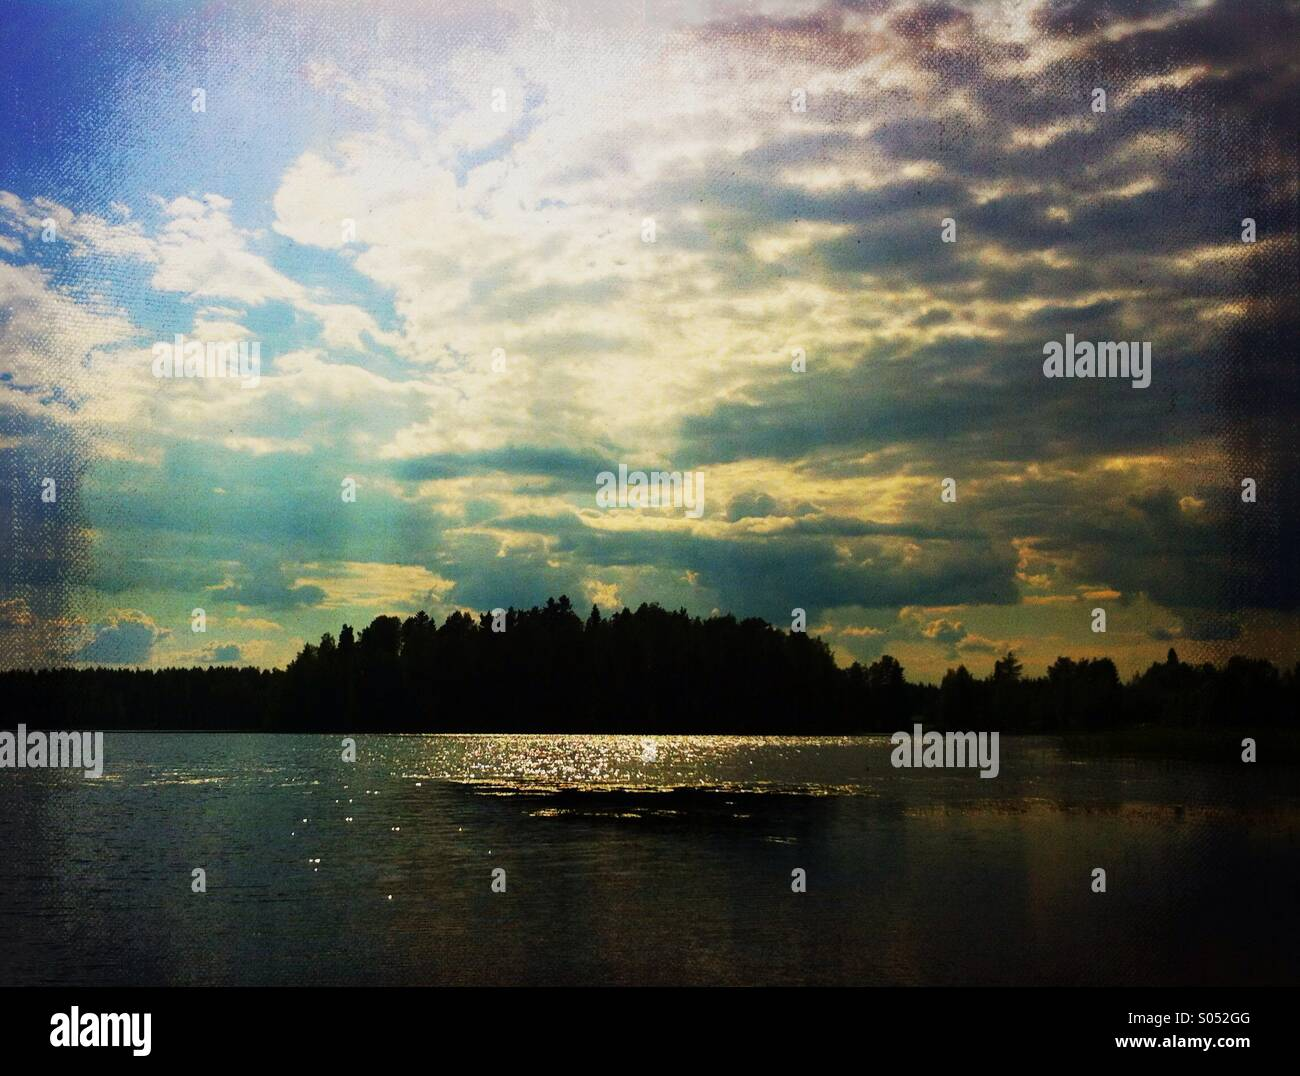 Dramatic lakeview on a hot summer day - Stock Image